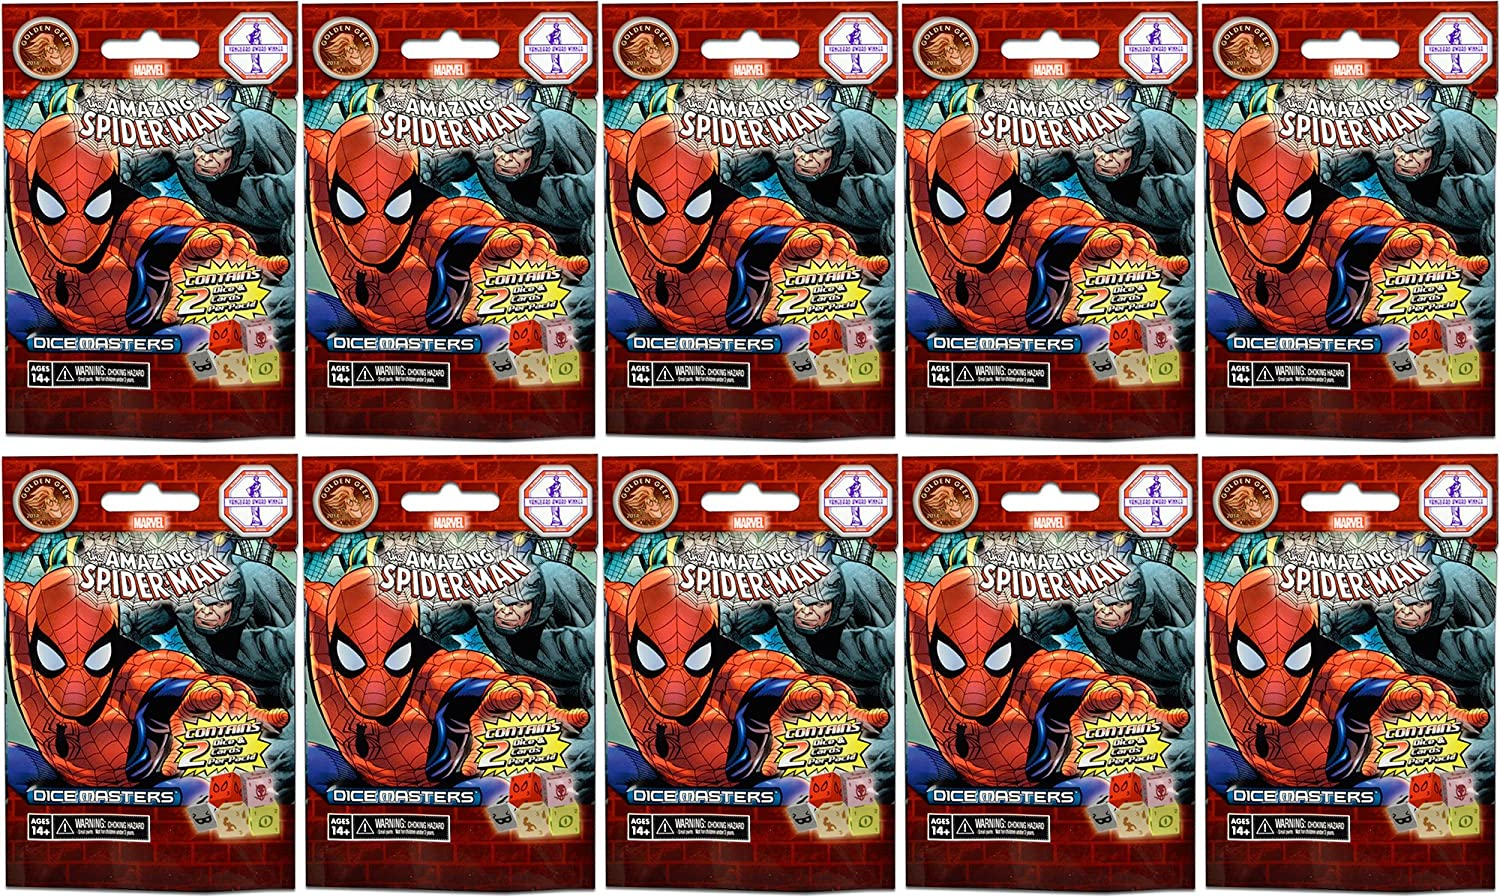 10 (Ten) Boosters Packs of Marvel Dice Masters  The Amazing SpiderMan Dice Building Game (10 Random Foil Packs)